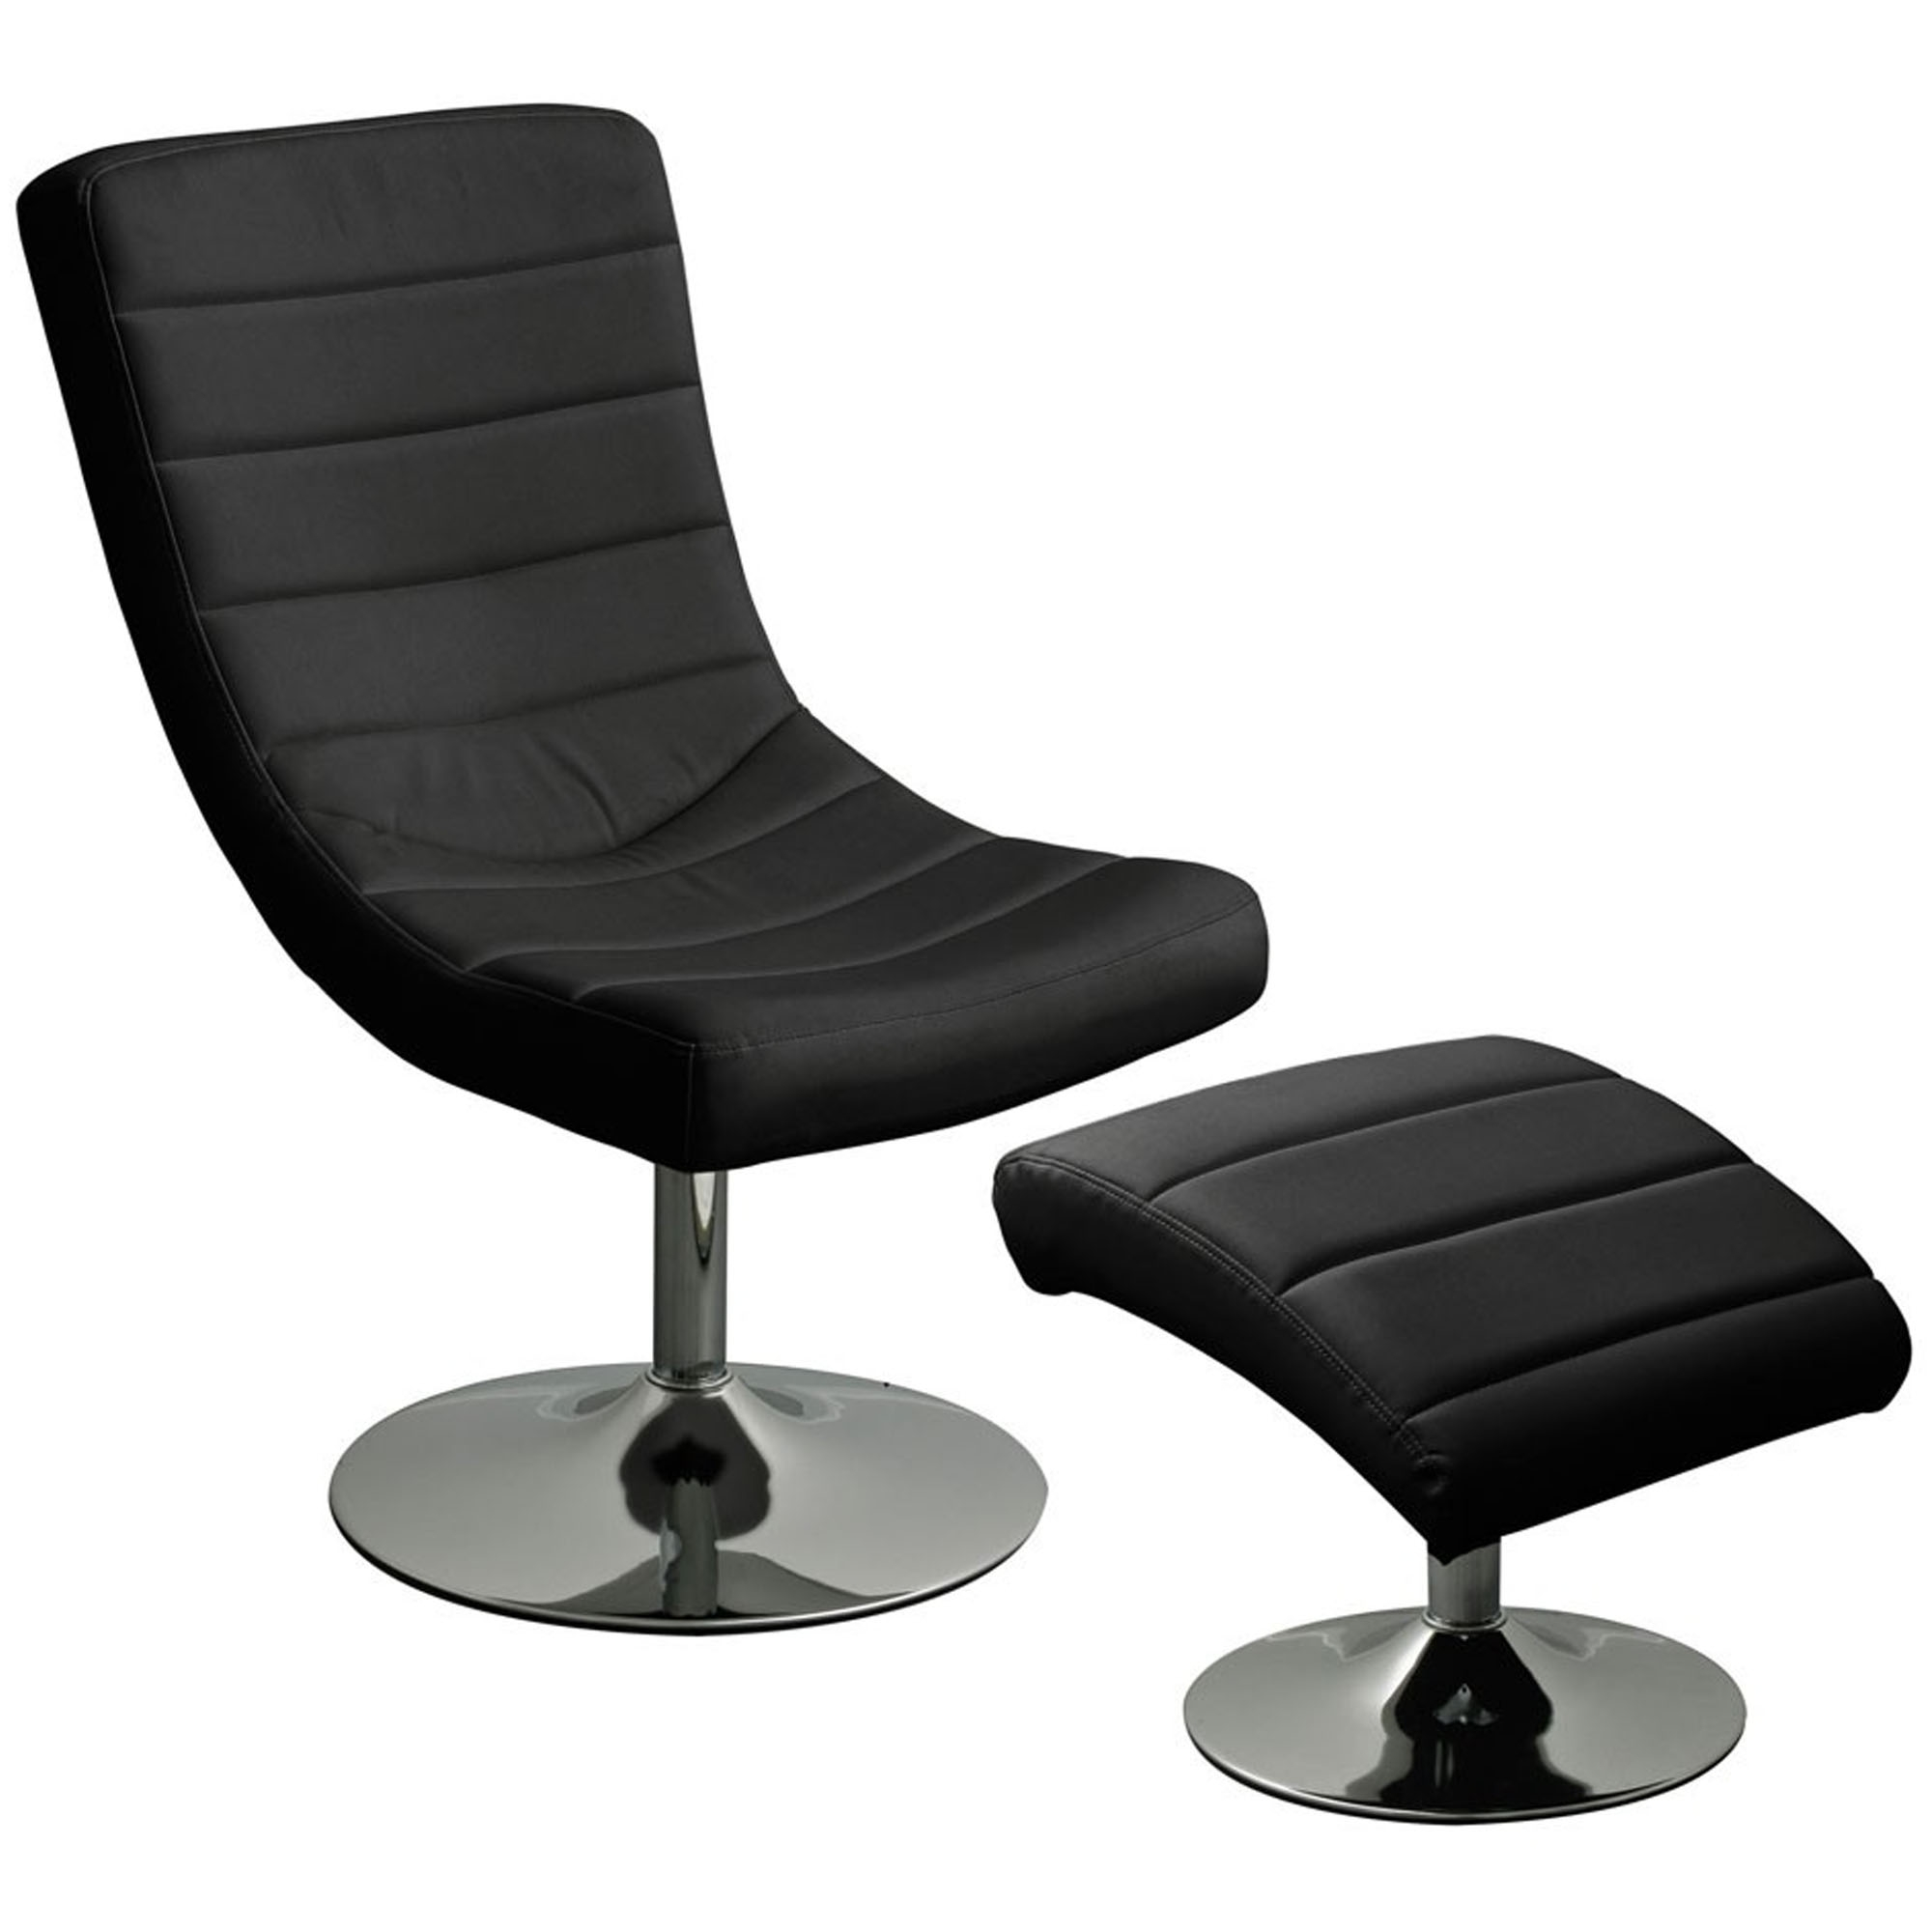 Miraculous Curved Chair And Footstool Inzonedesignstudio Interior Chair Design Inzonedesignstudiocom